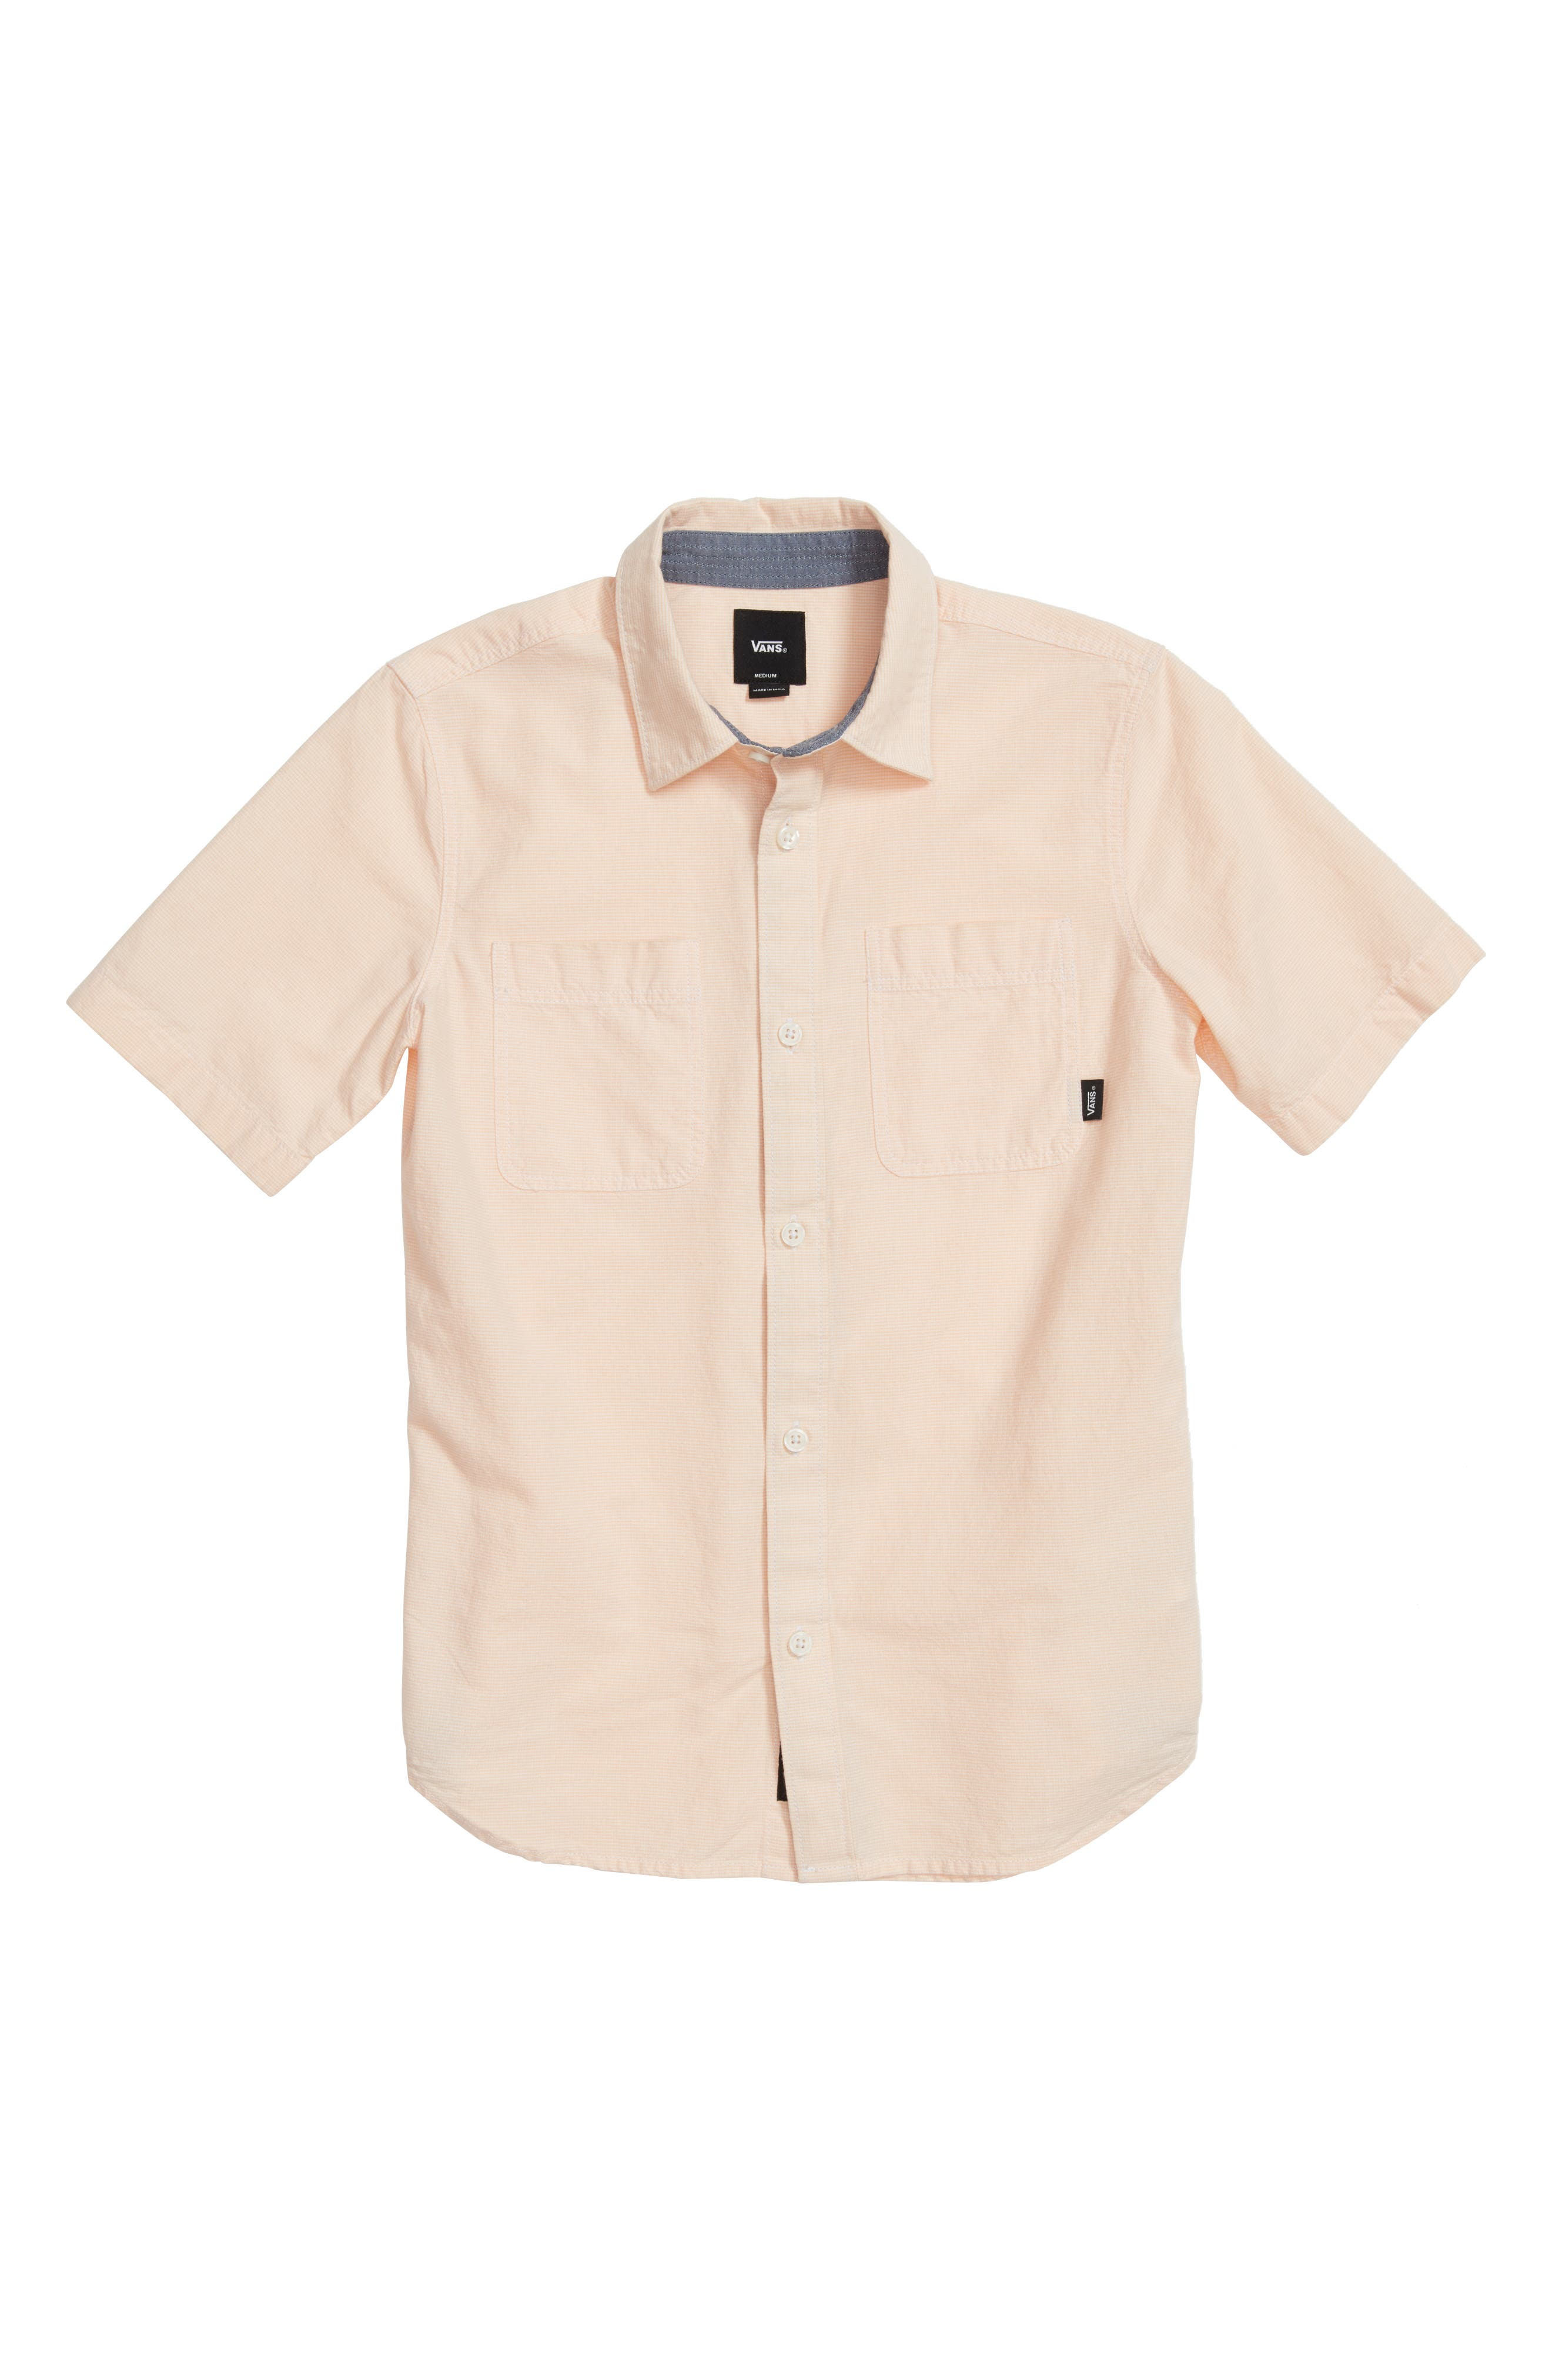 Wexford Woven Shirt,                         Main,                         color, Apricot Ice